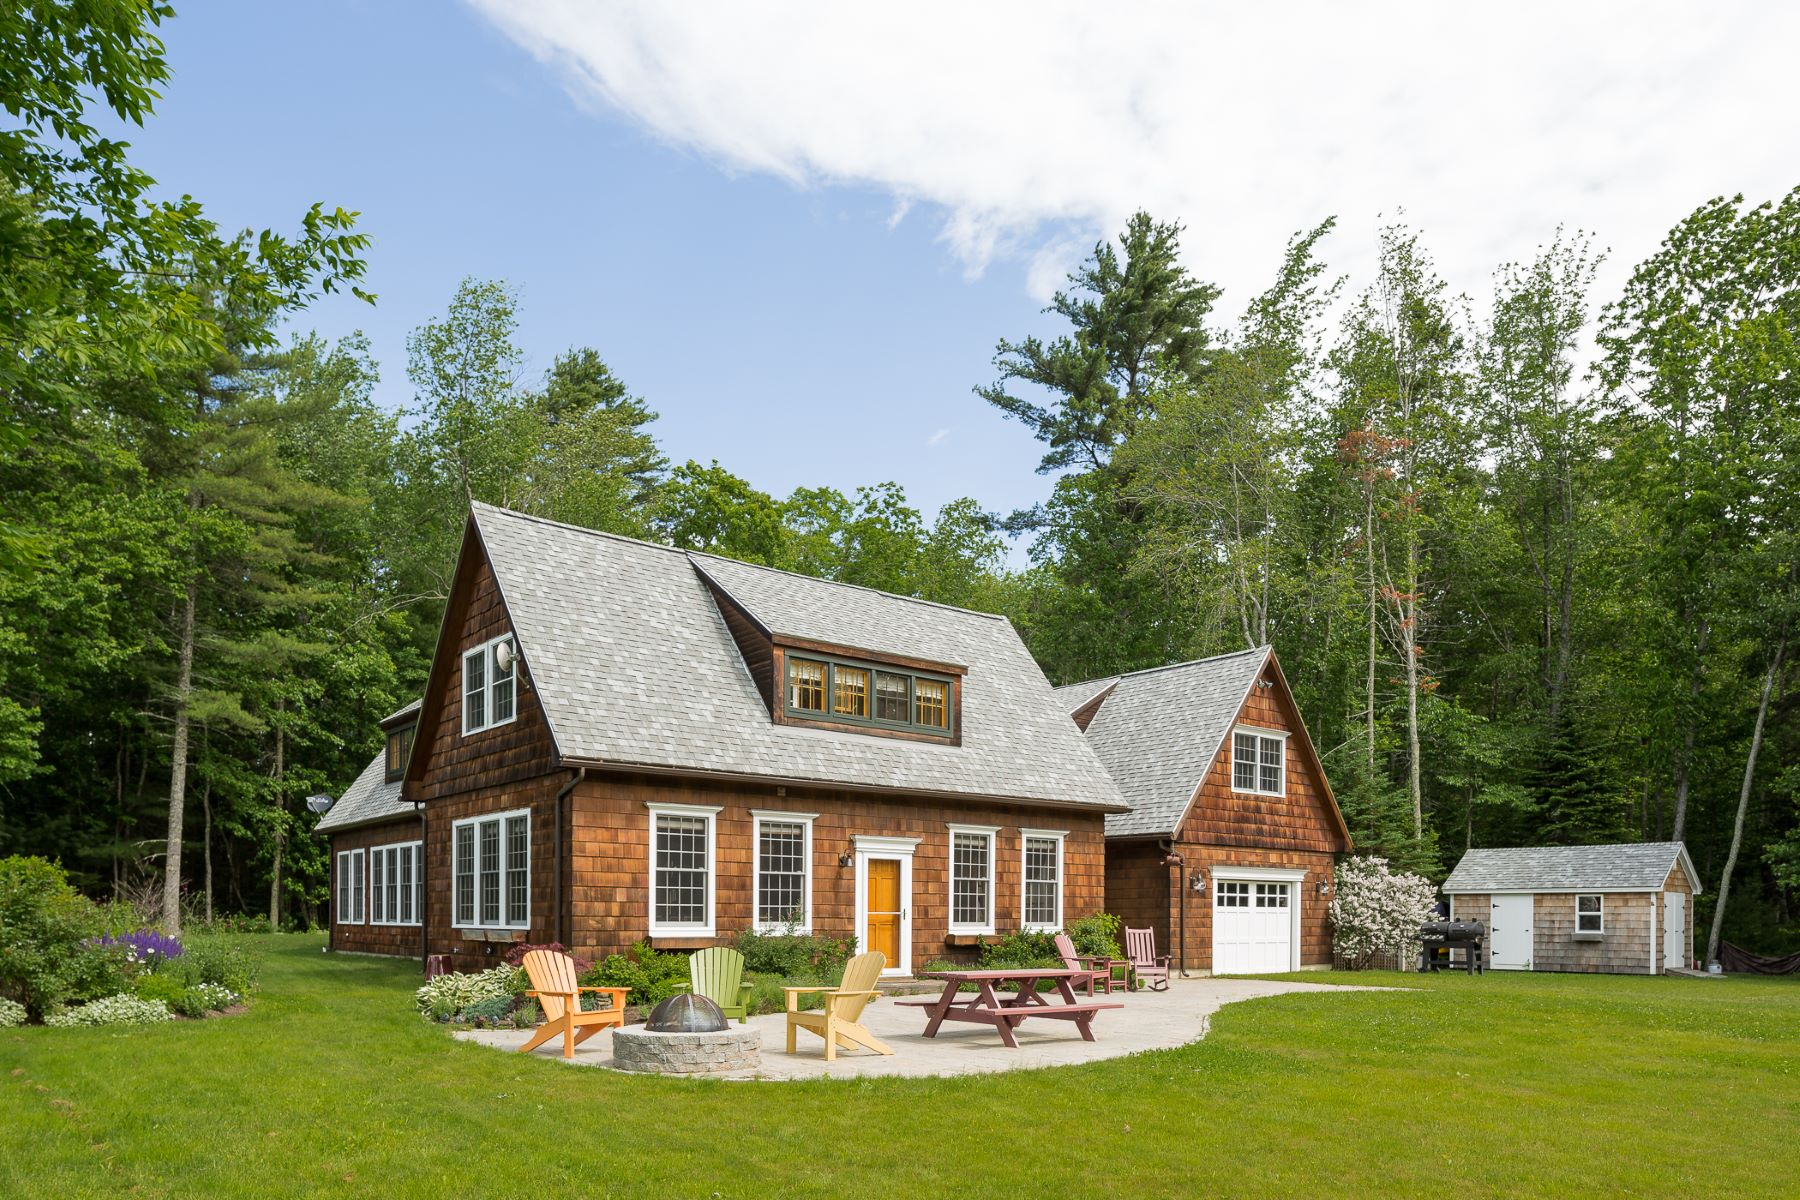 Single Family Home for Sale at 6 Country Way Camden, Maine, 04843 United States